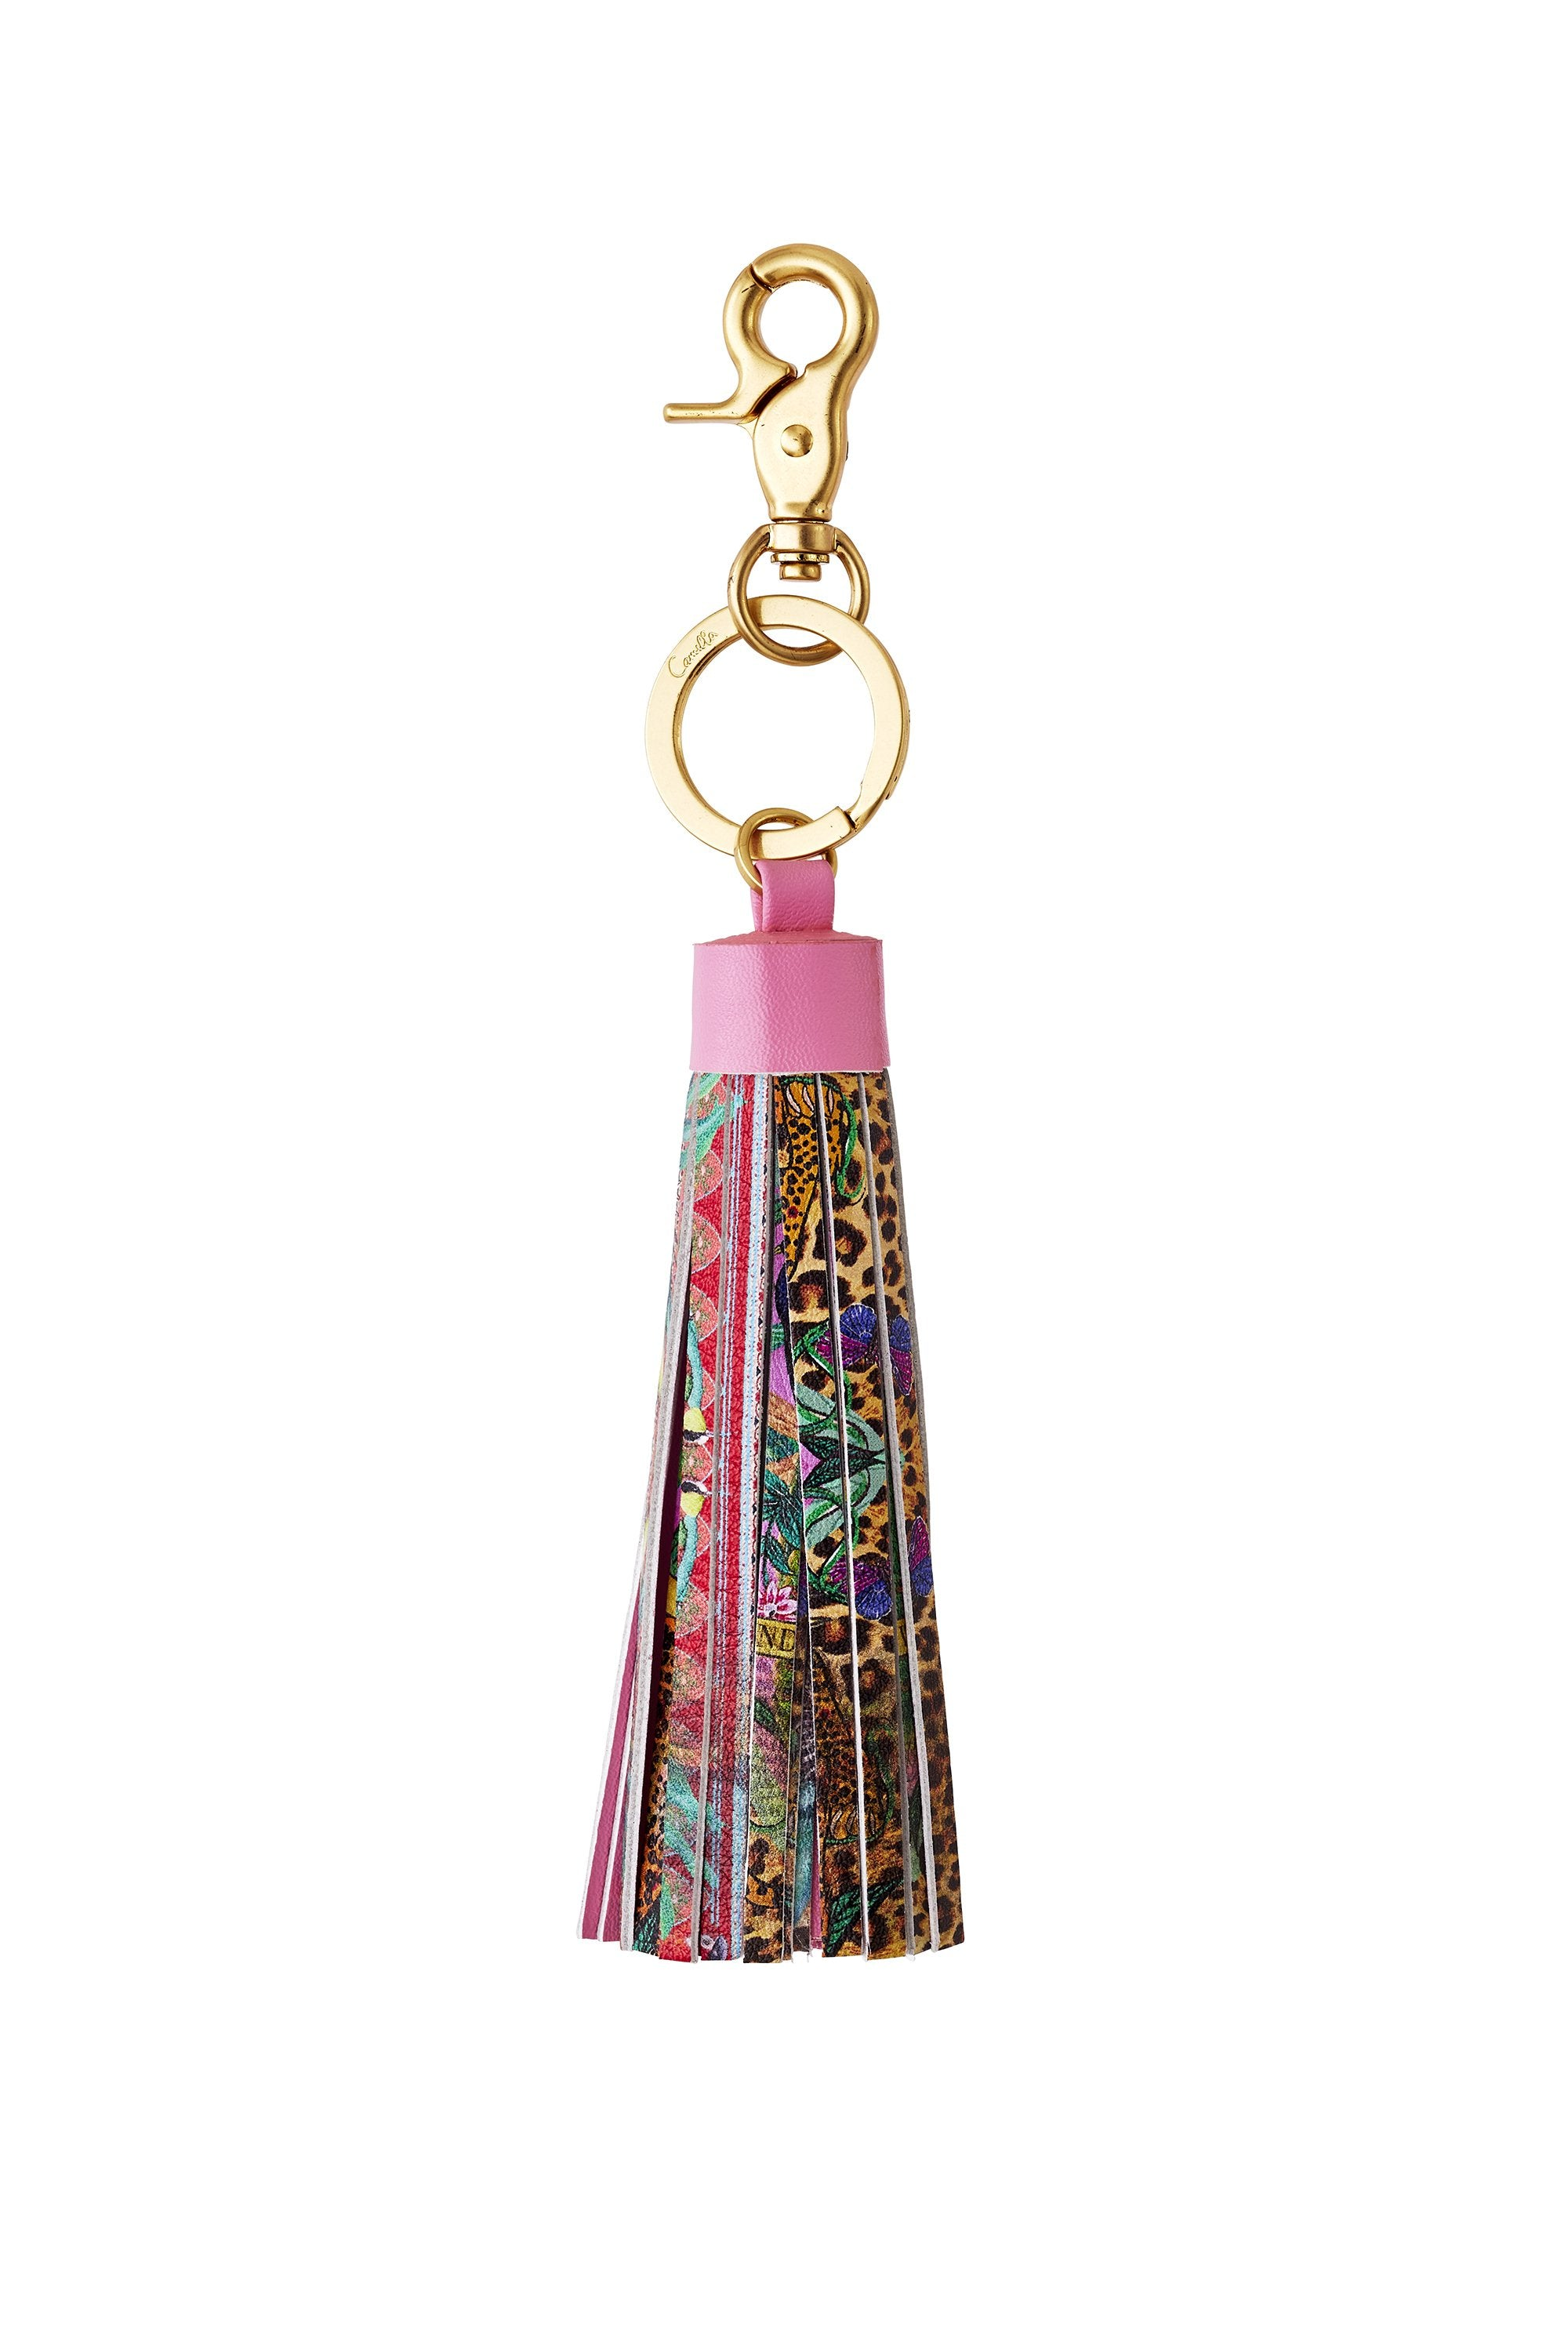 THE JUNGLE BOOK LEATHER TASSEL KEY RING